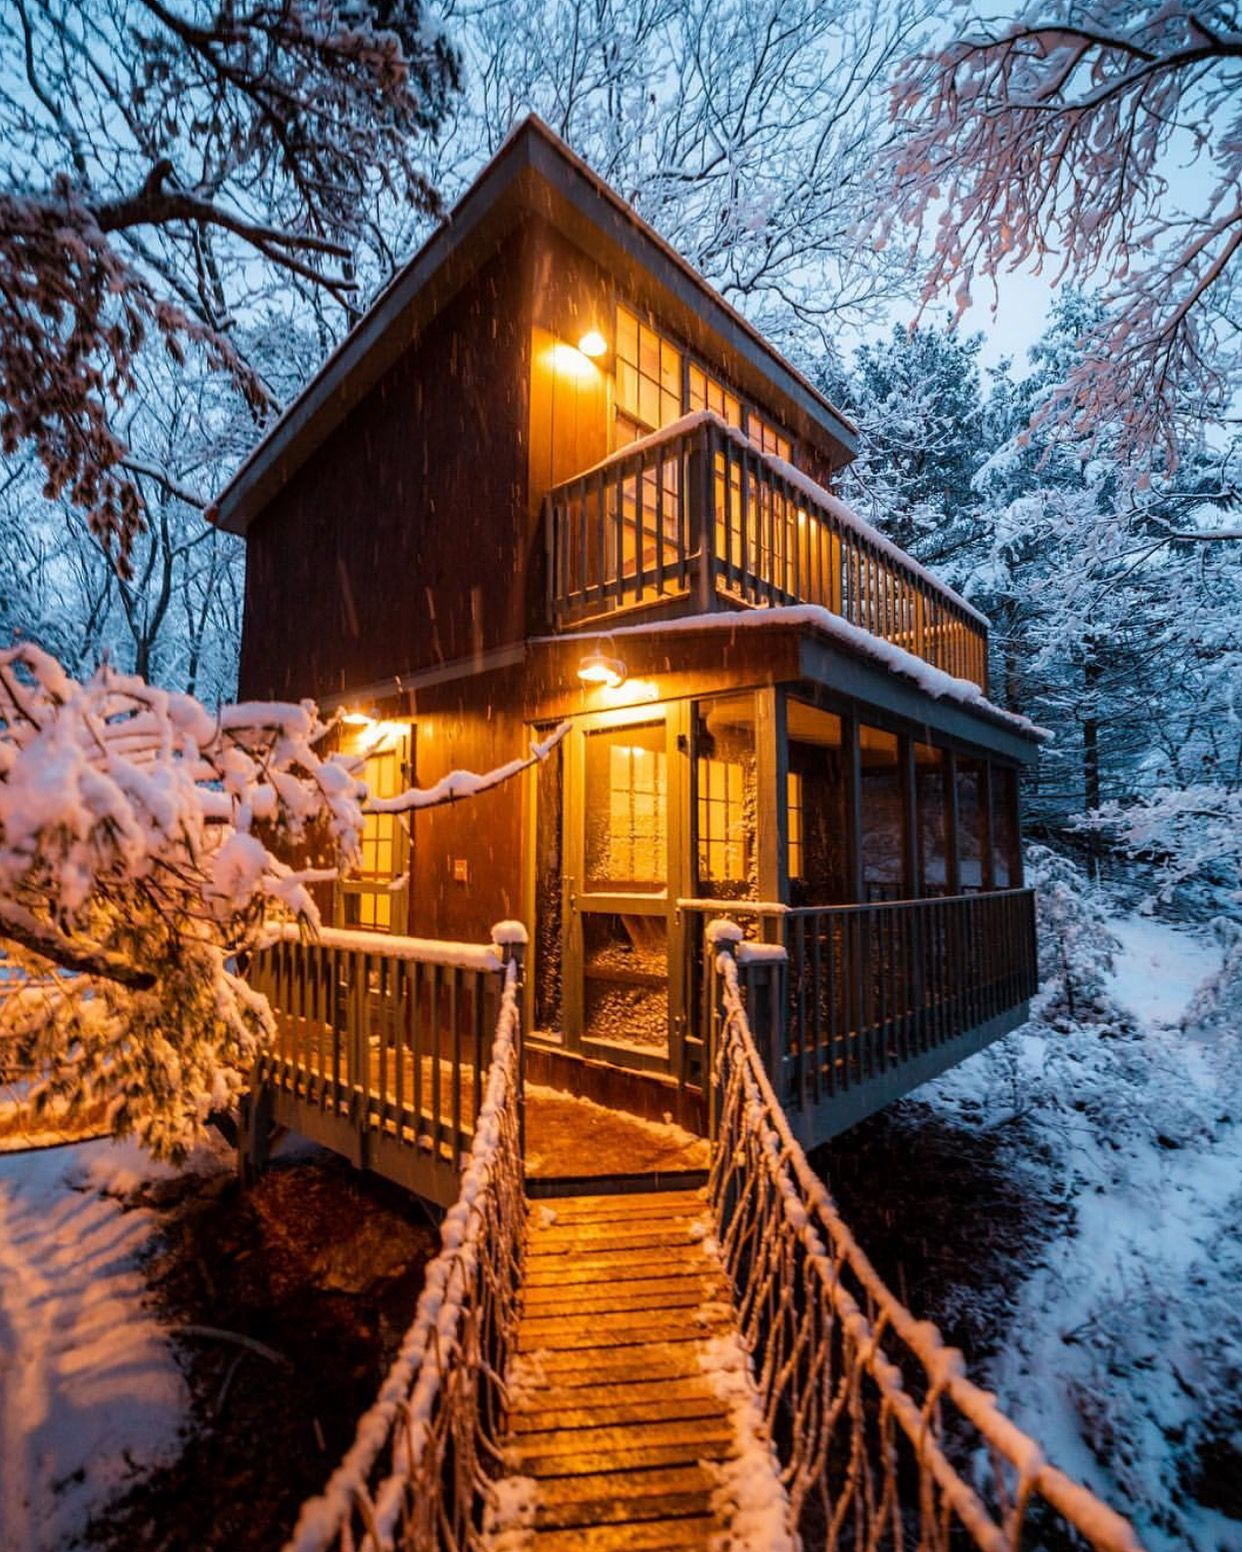 treehouse airbnb near me